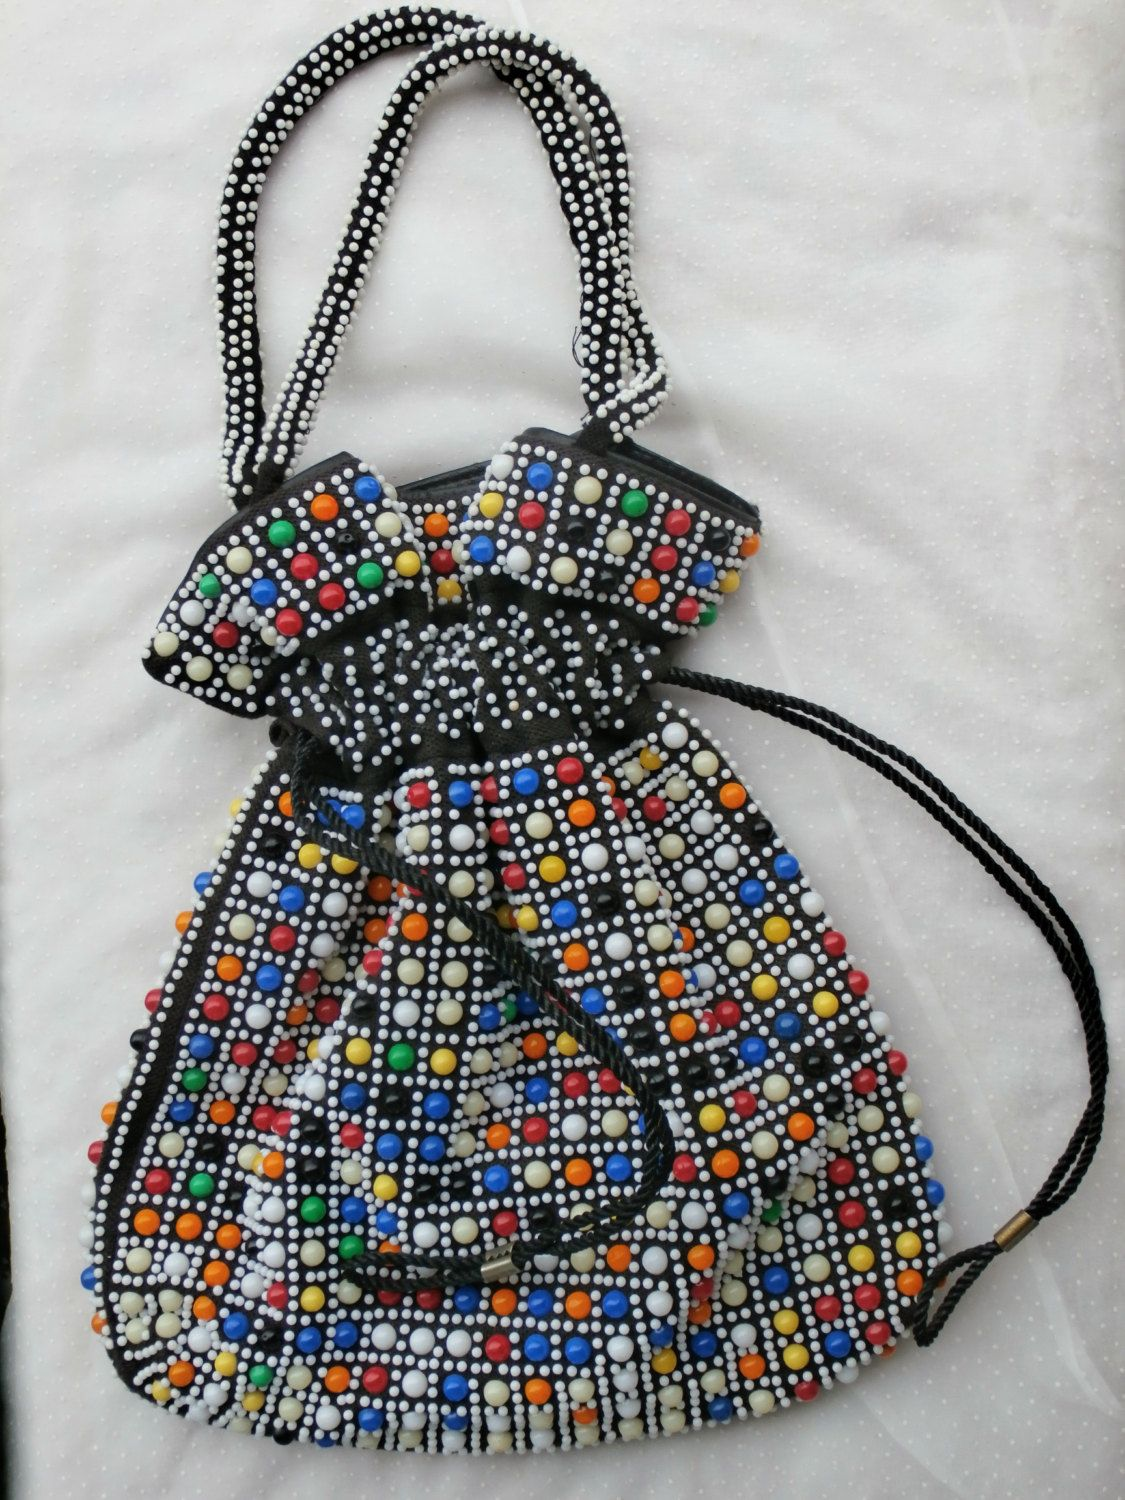 Colorful Vintage Plastic Bead Bag, Purse Black with Multi Color Beads by  MendozamVintage on Etsy